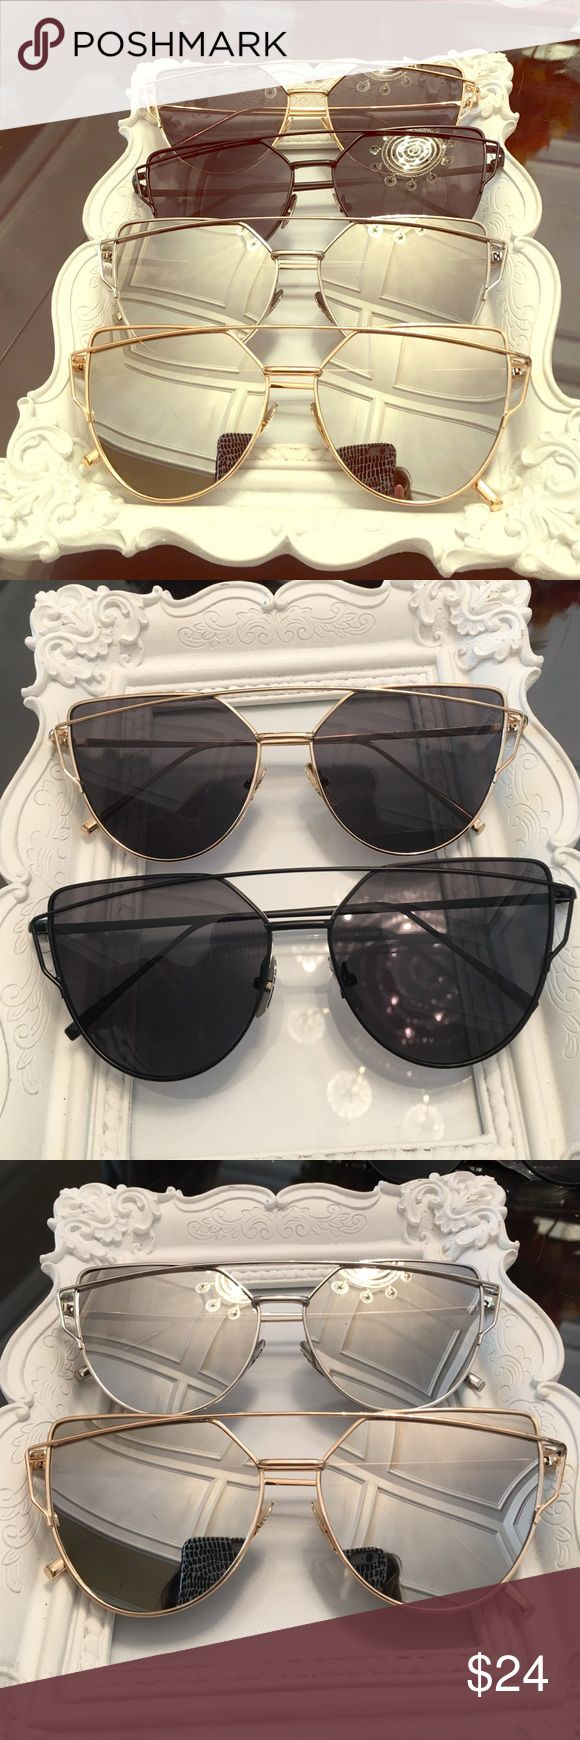 Fashion sunglasses 4 diff colors available : black, gold on black, silver, and gold on silver,    Not name brand Zara Accessories Sunglasses